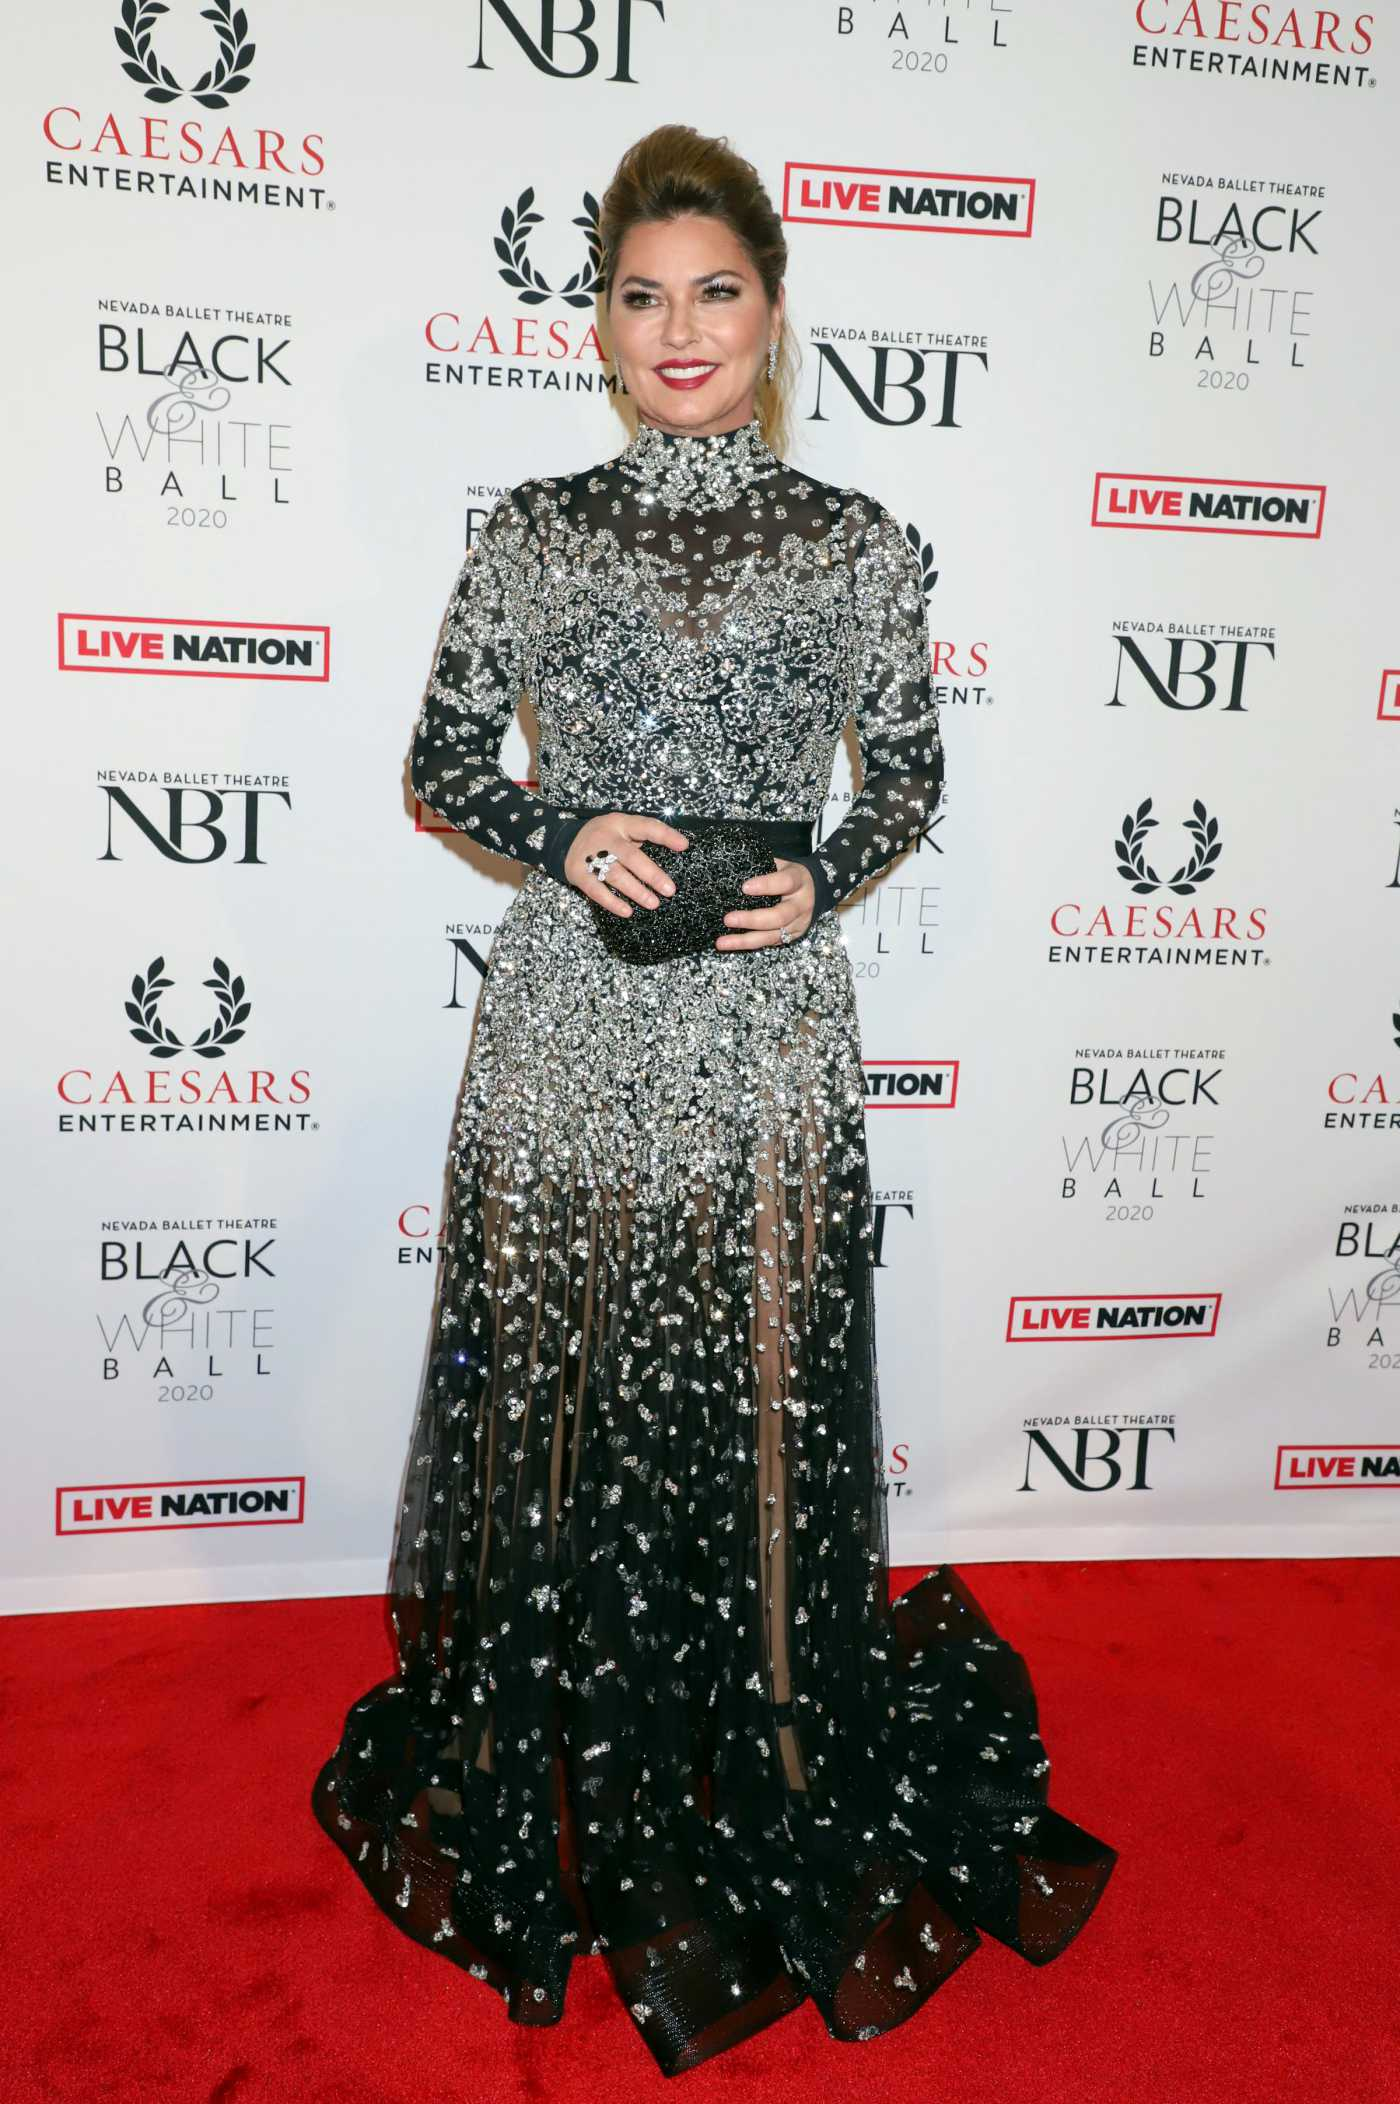 Shania Twain Attends the Nevada Ballet Theatre's Black and White Ball in Las Vegas 01/25/2020